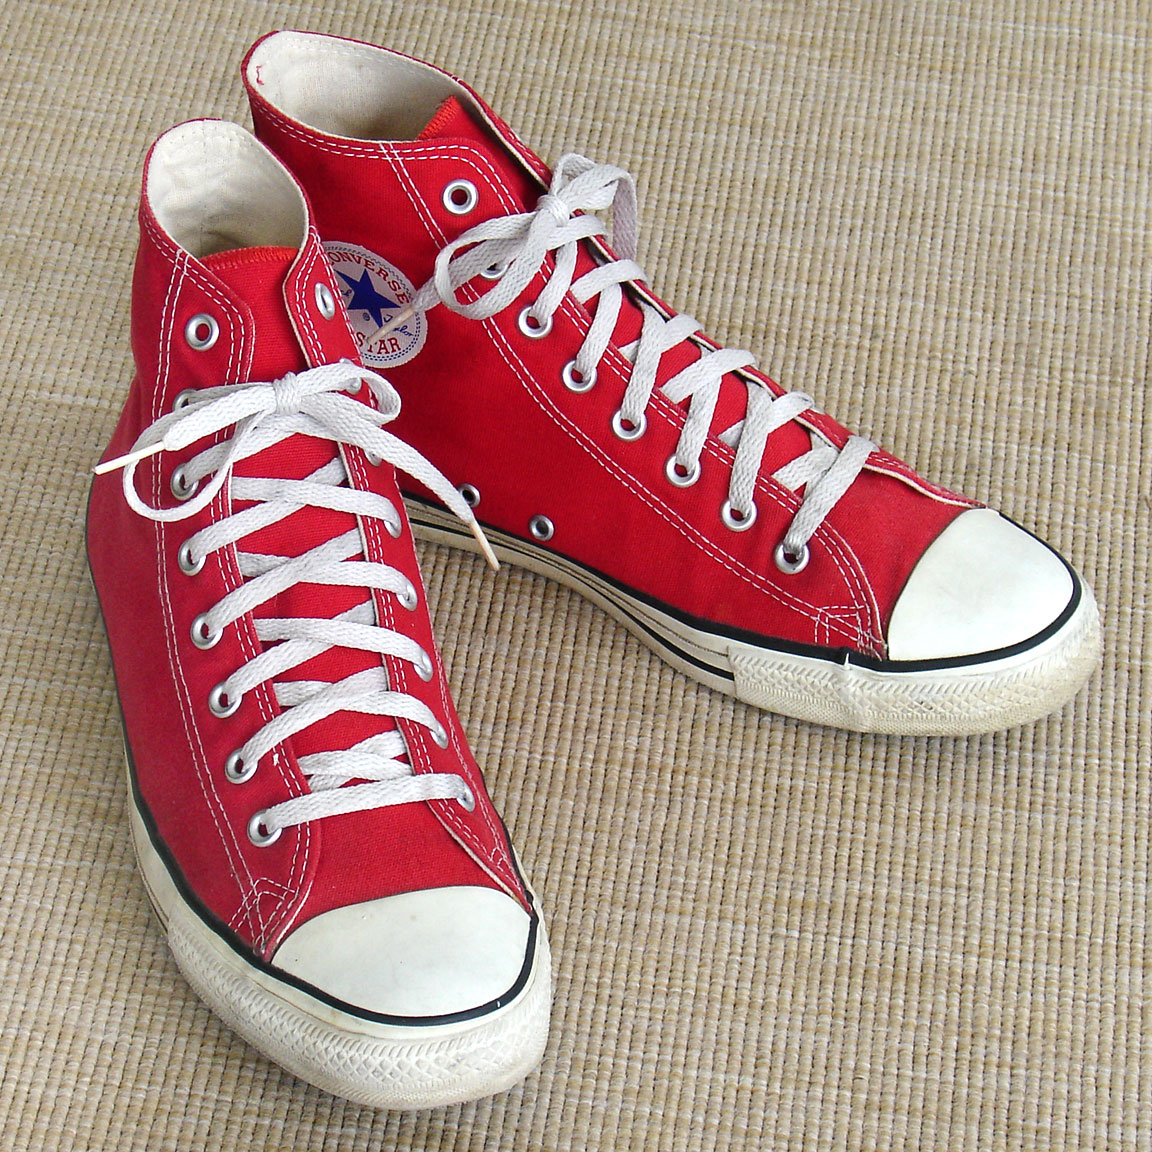 75531a18876a Vintage red hi-top American-made Converse All Star Chuck Taylor shoes for  sale